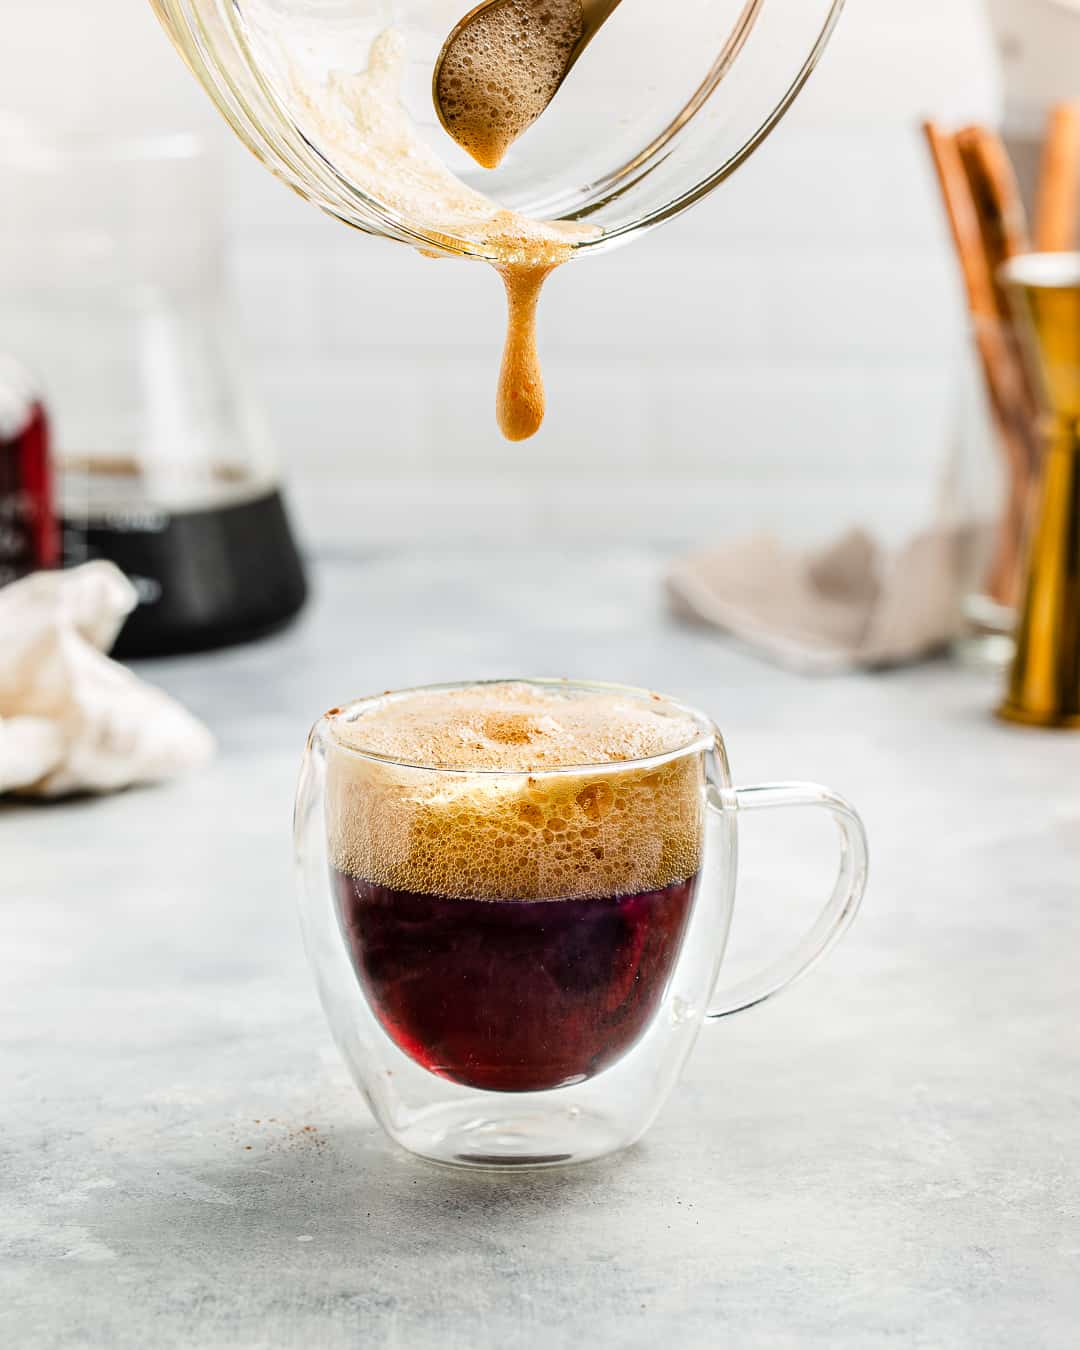 Coffee foam dripping into the cocktail